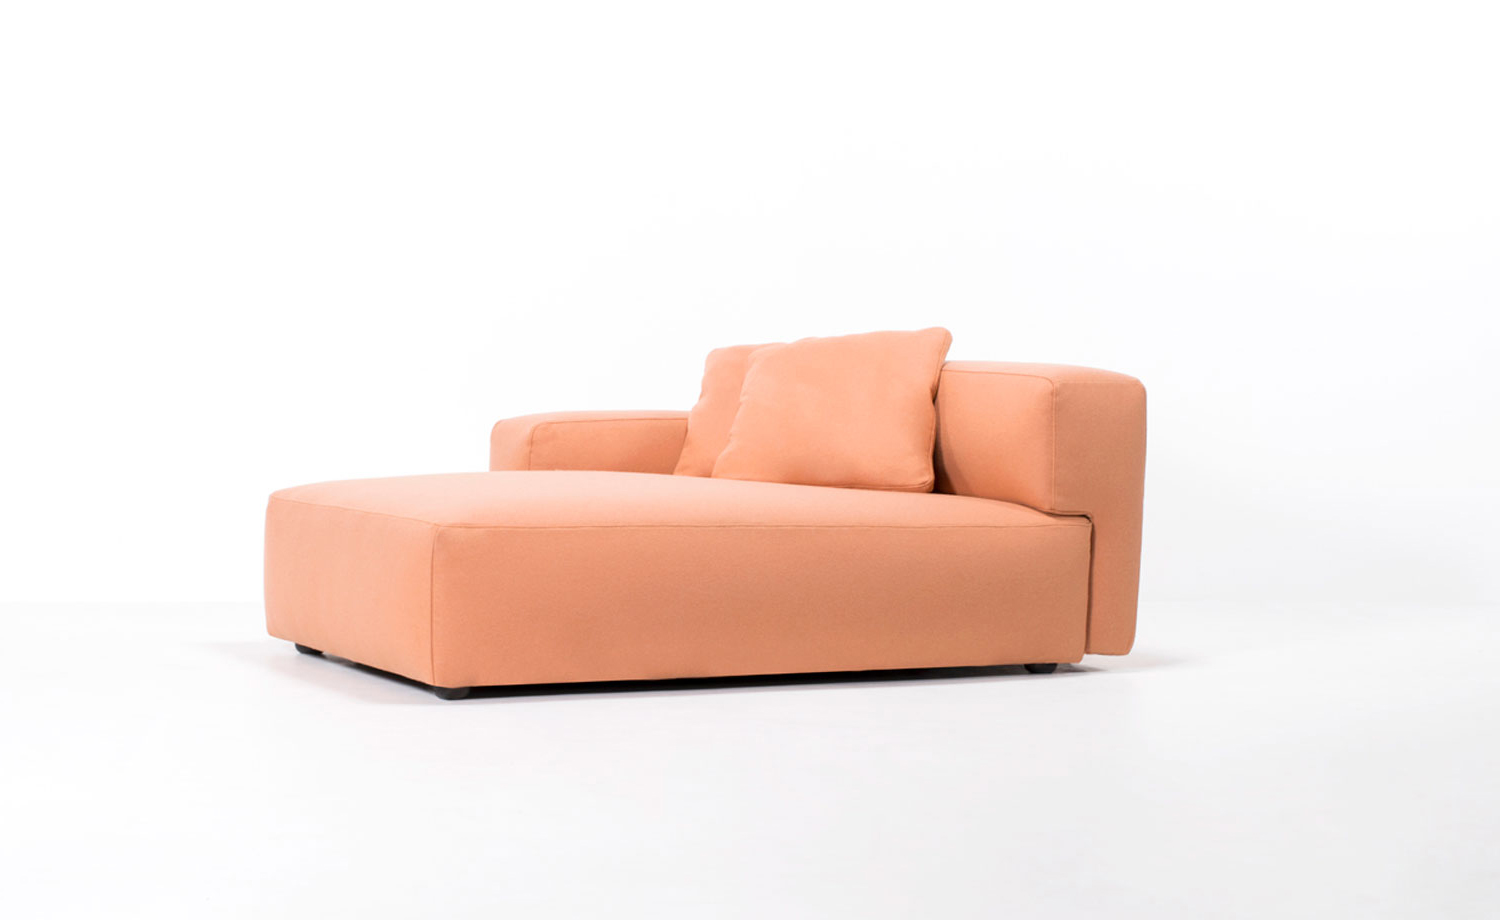 EXPO chaise longue image #9